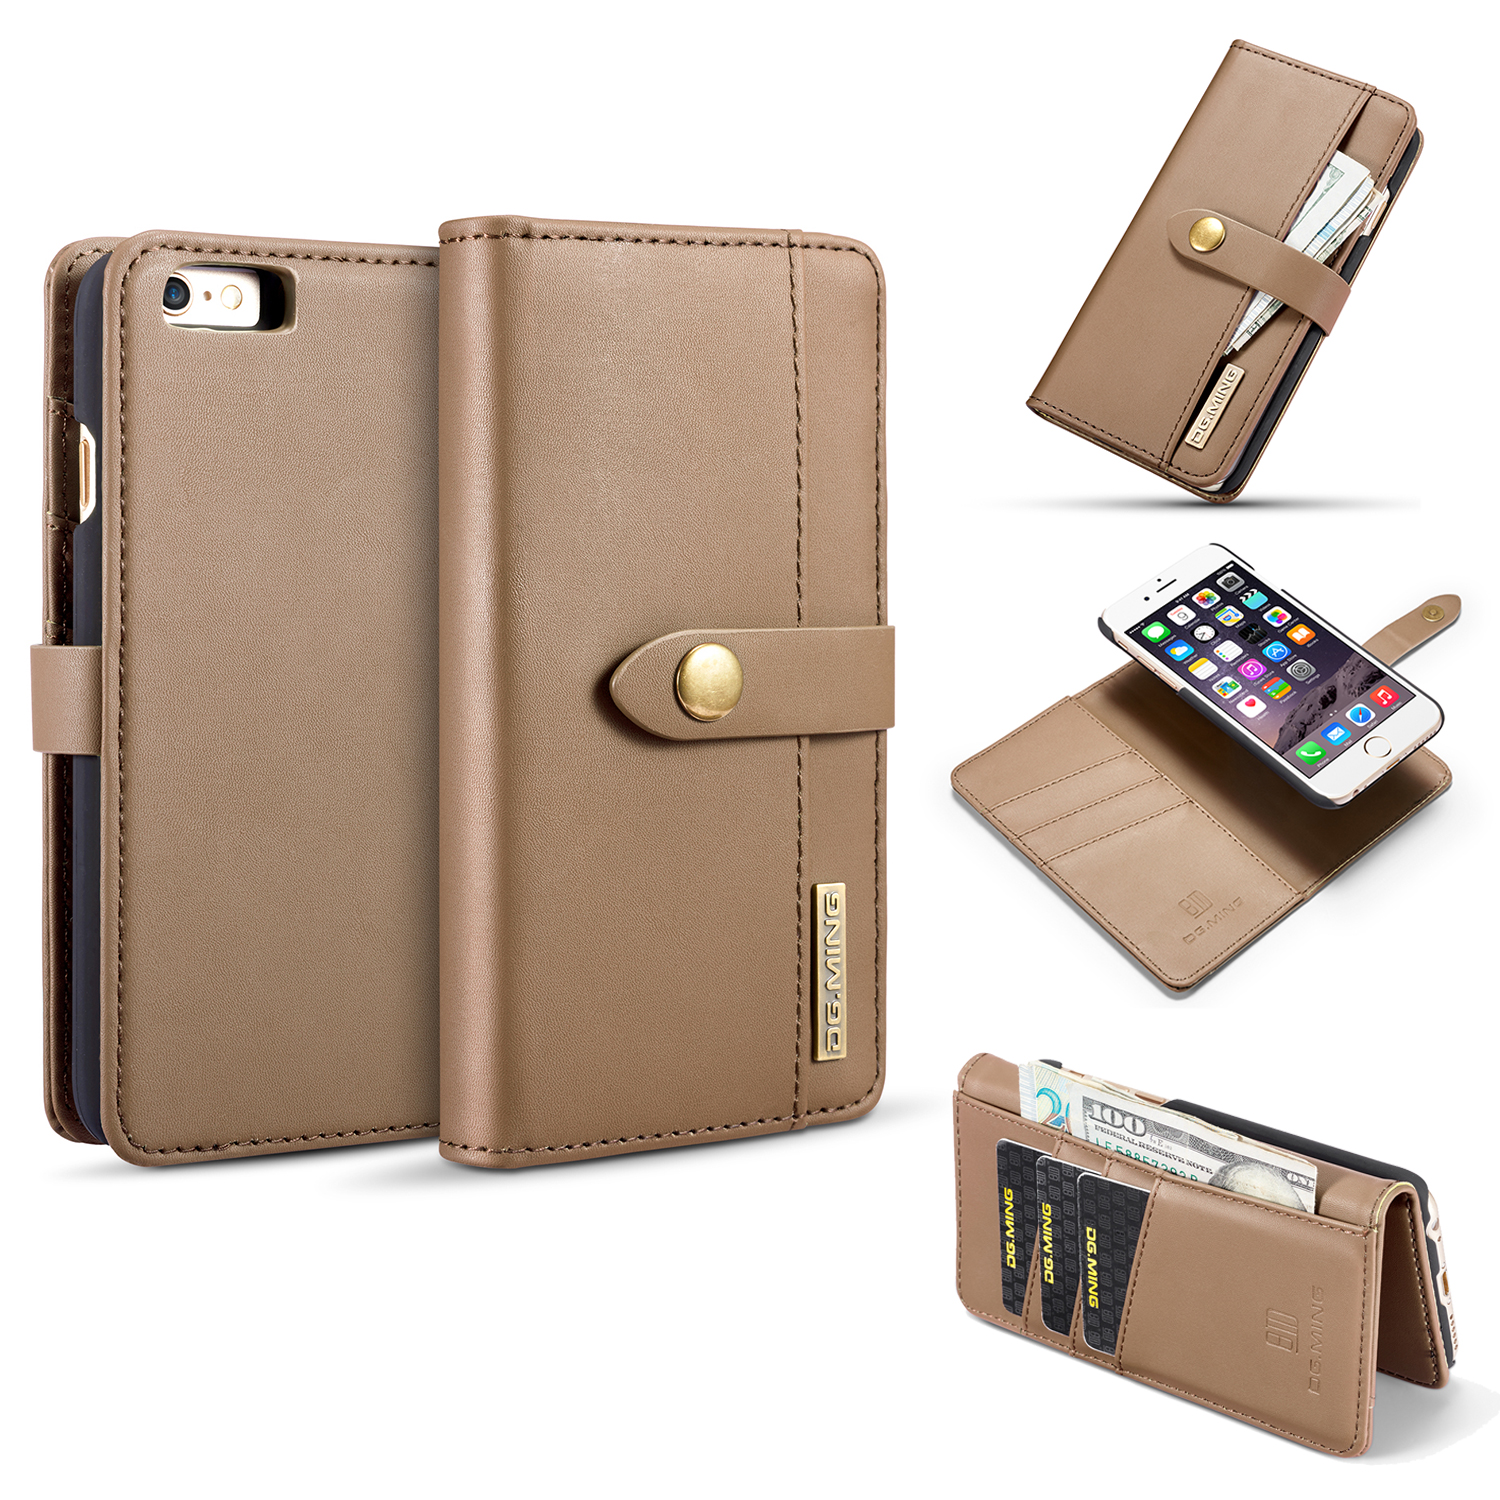 iPhone 6 Plus Case, iPhone 6S Wallet Case, Allytech Vintage Leather Folio Flip Cards Slots Magnetic Detachable Cover Anti-Slip Kickstand Money Pocket Wallet Case for Apple iPhone 6 / 6S Plus, Brown